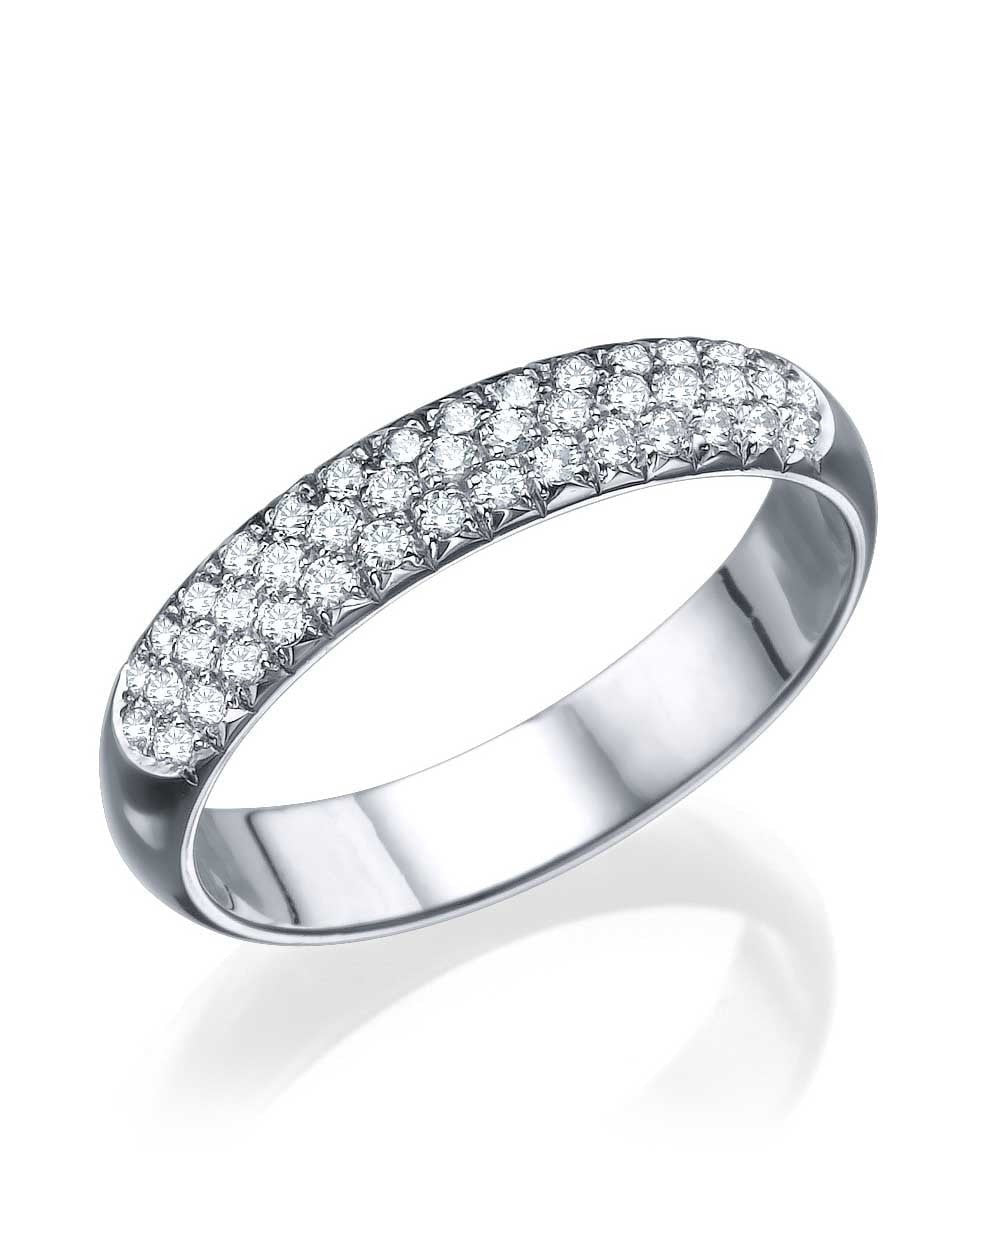 Wedding Rings White Gold 0.39ct Diamond Semi-Eternity Wedding Ring